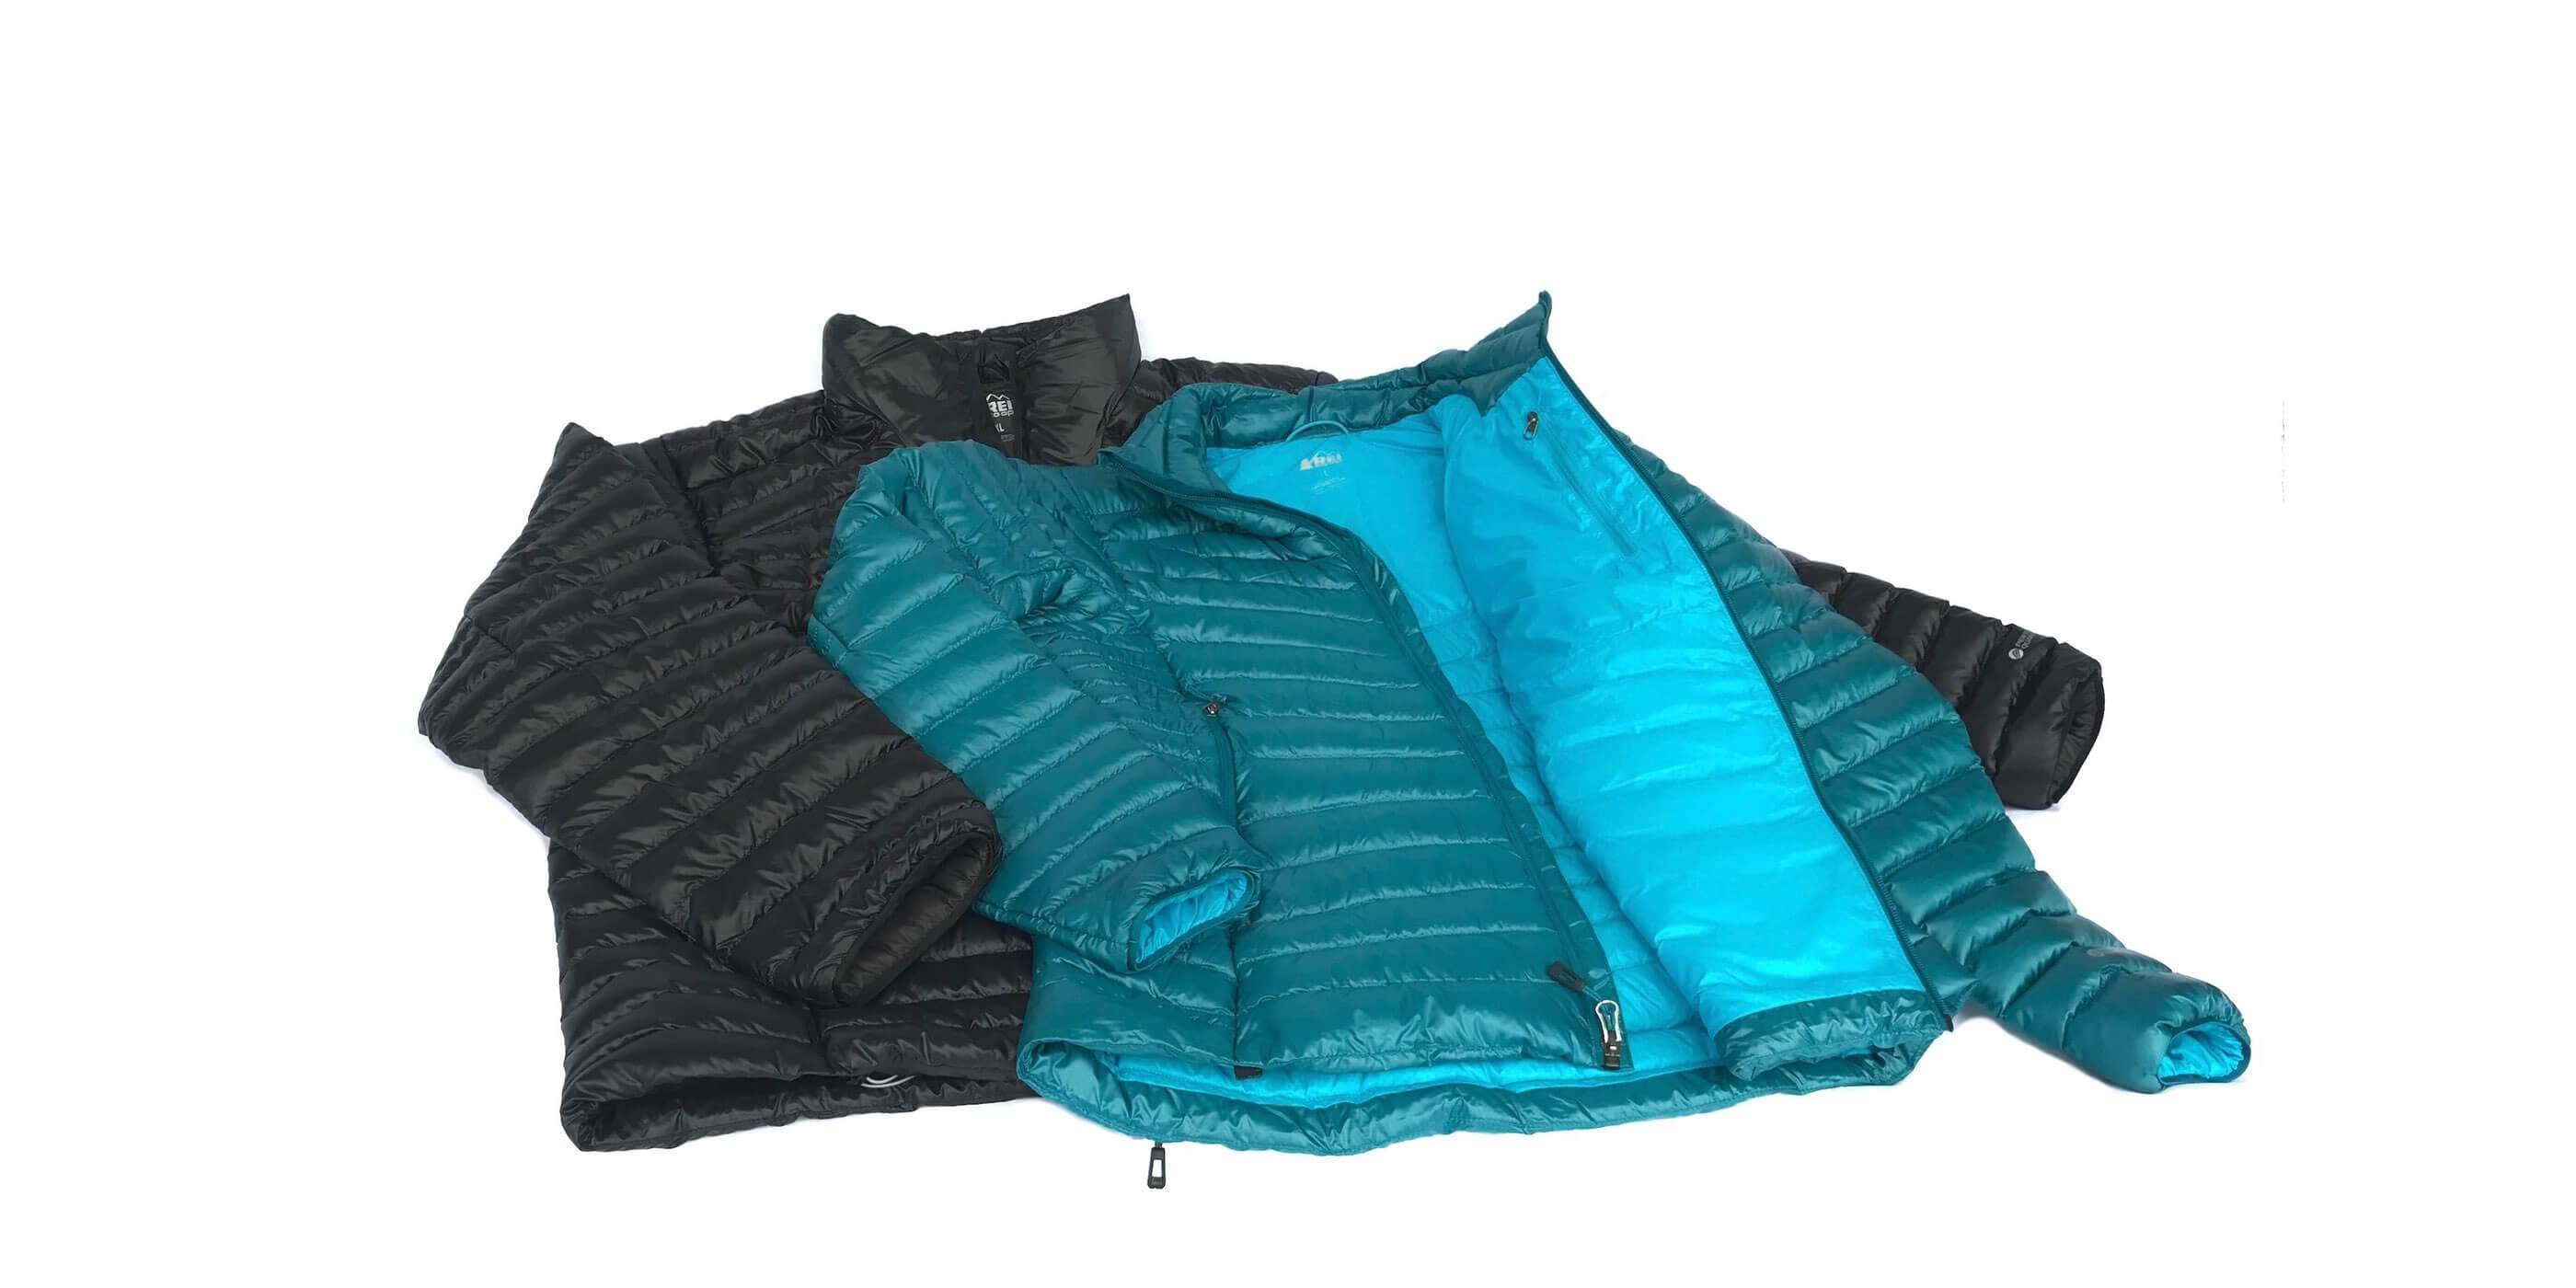 Rei co op magma 850 down jacket review mens womens 2800 for Rei fishing gear